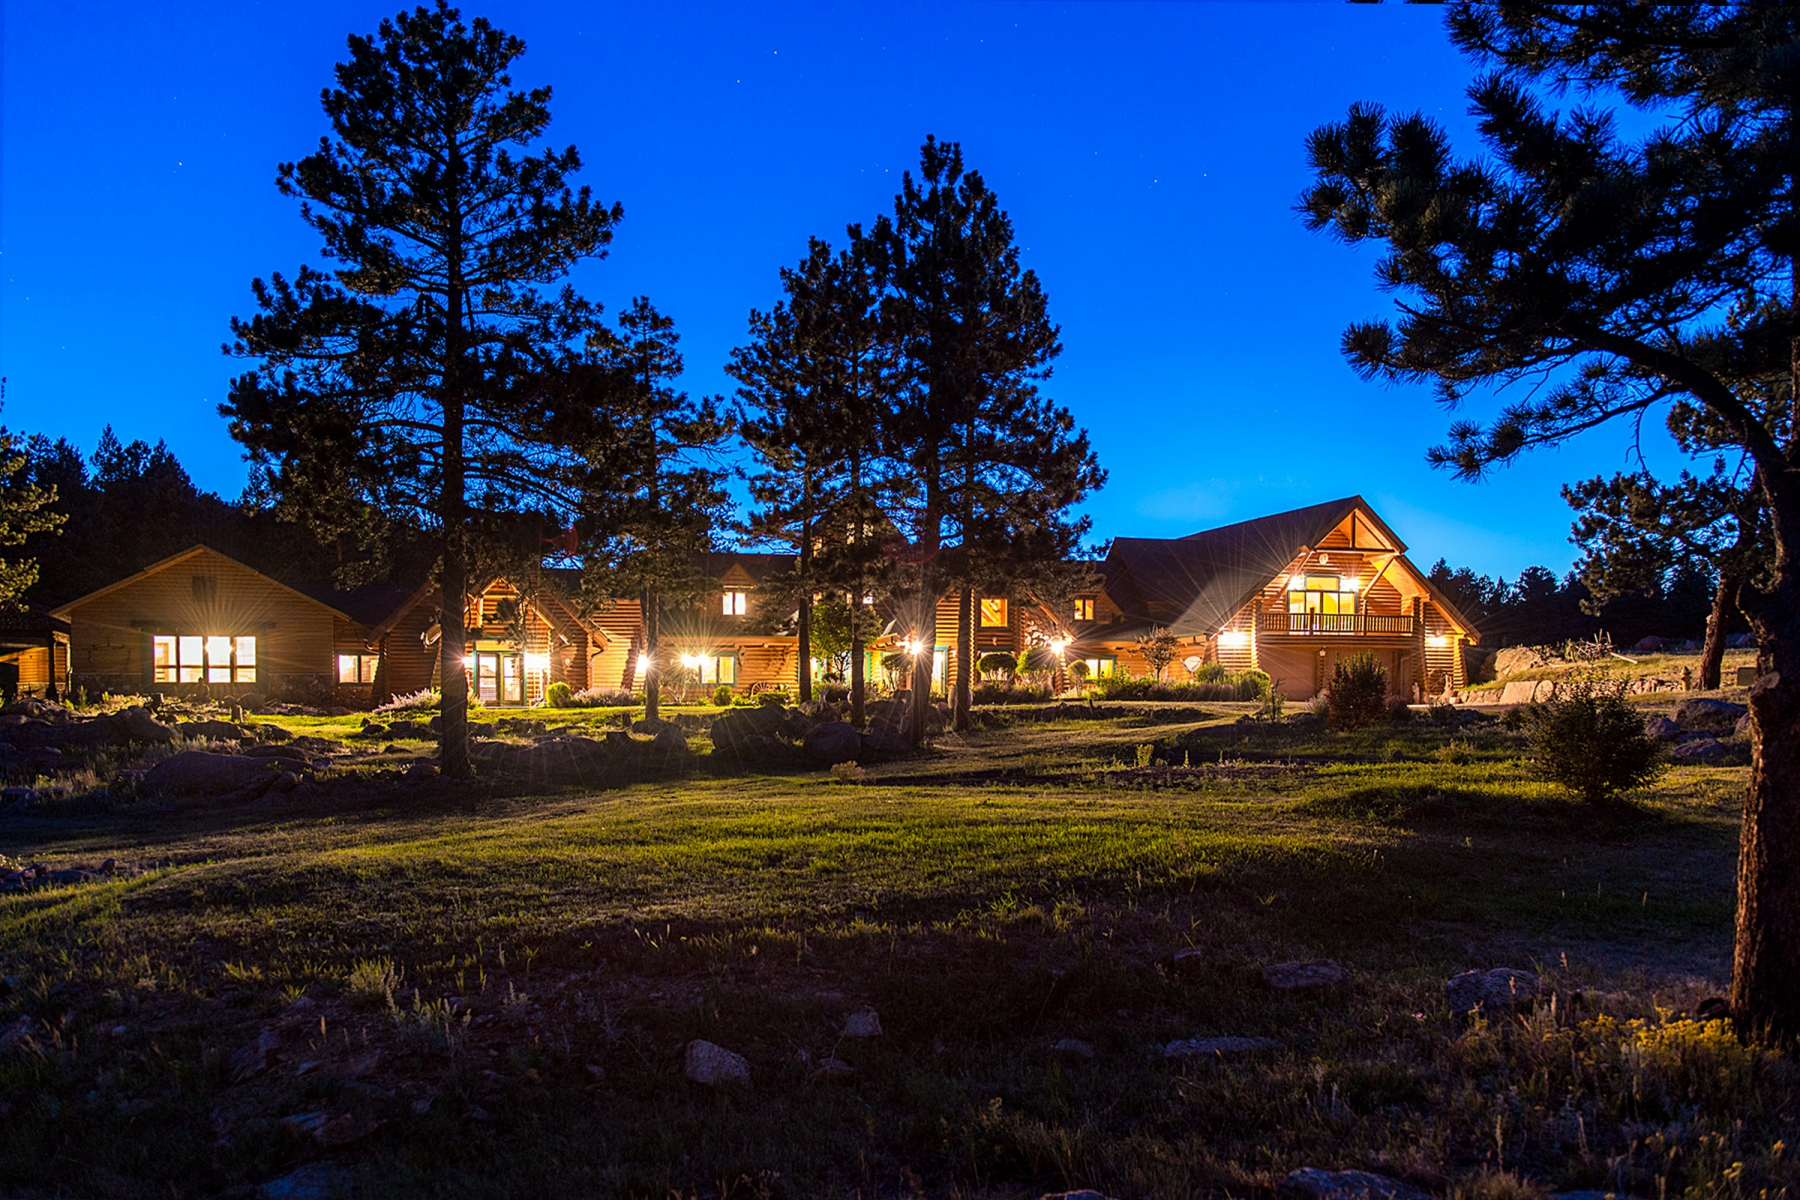 Single Family Home for Active at Mountain Luxury Log Home 1260 Twin Sisters Rd Nederland, Colorado 80466 United States